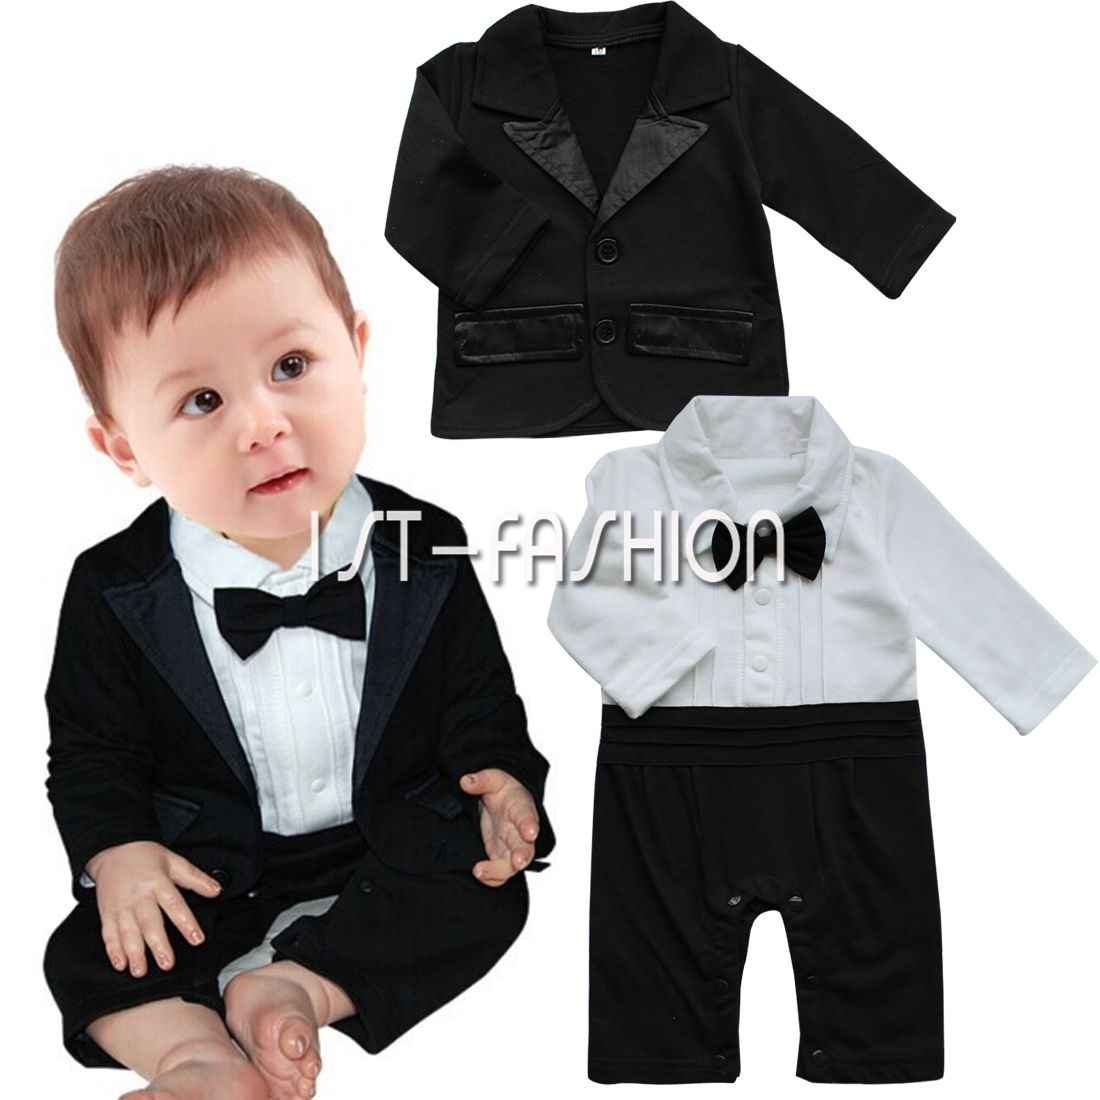 pcsborn baby boy formal party suit gentleman romper coat